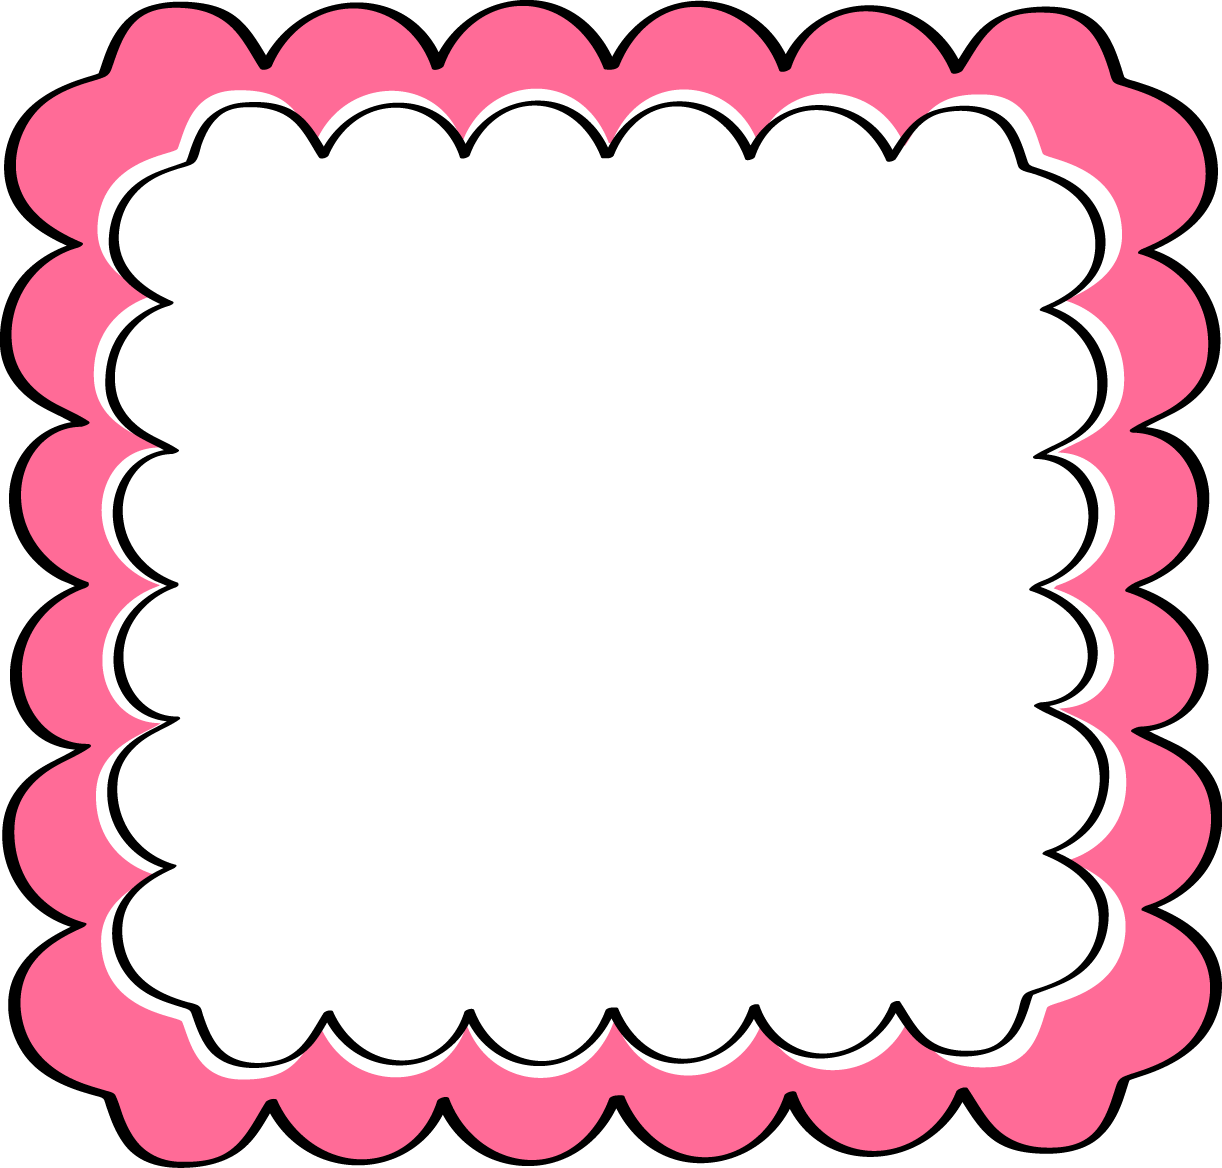 image freeuse library Free panda images pinkscrollframeclipart. Clipart school borders.